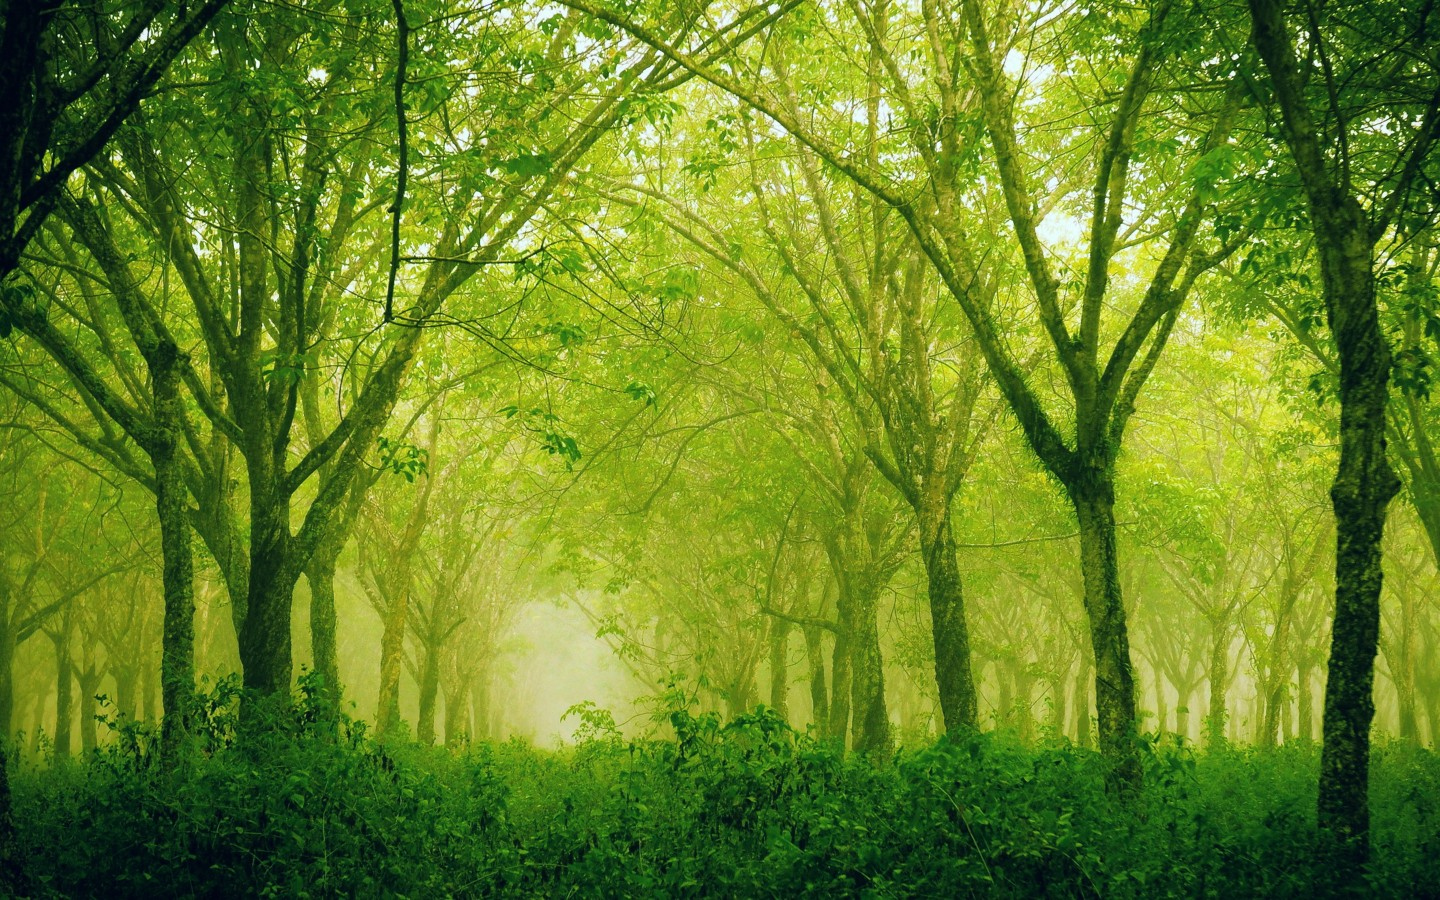 Hd wallpaper sublime silence forest for 2880 x 1800 retina display 1440x900